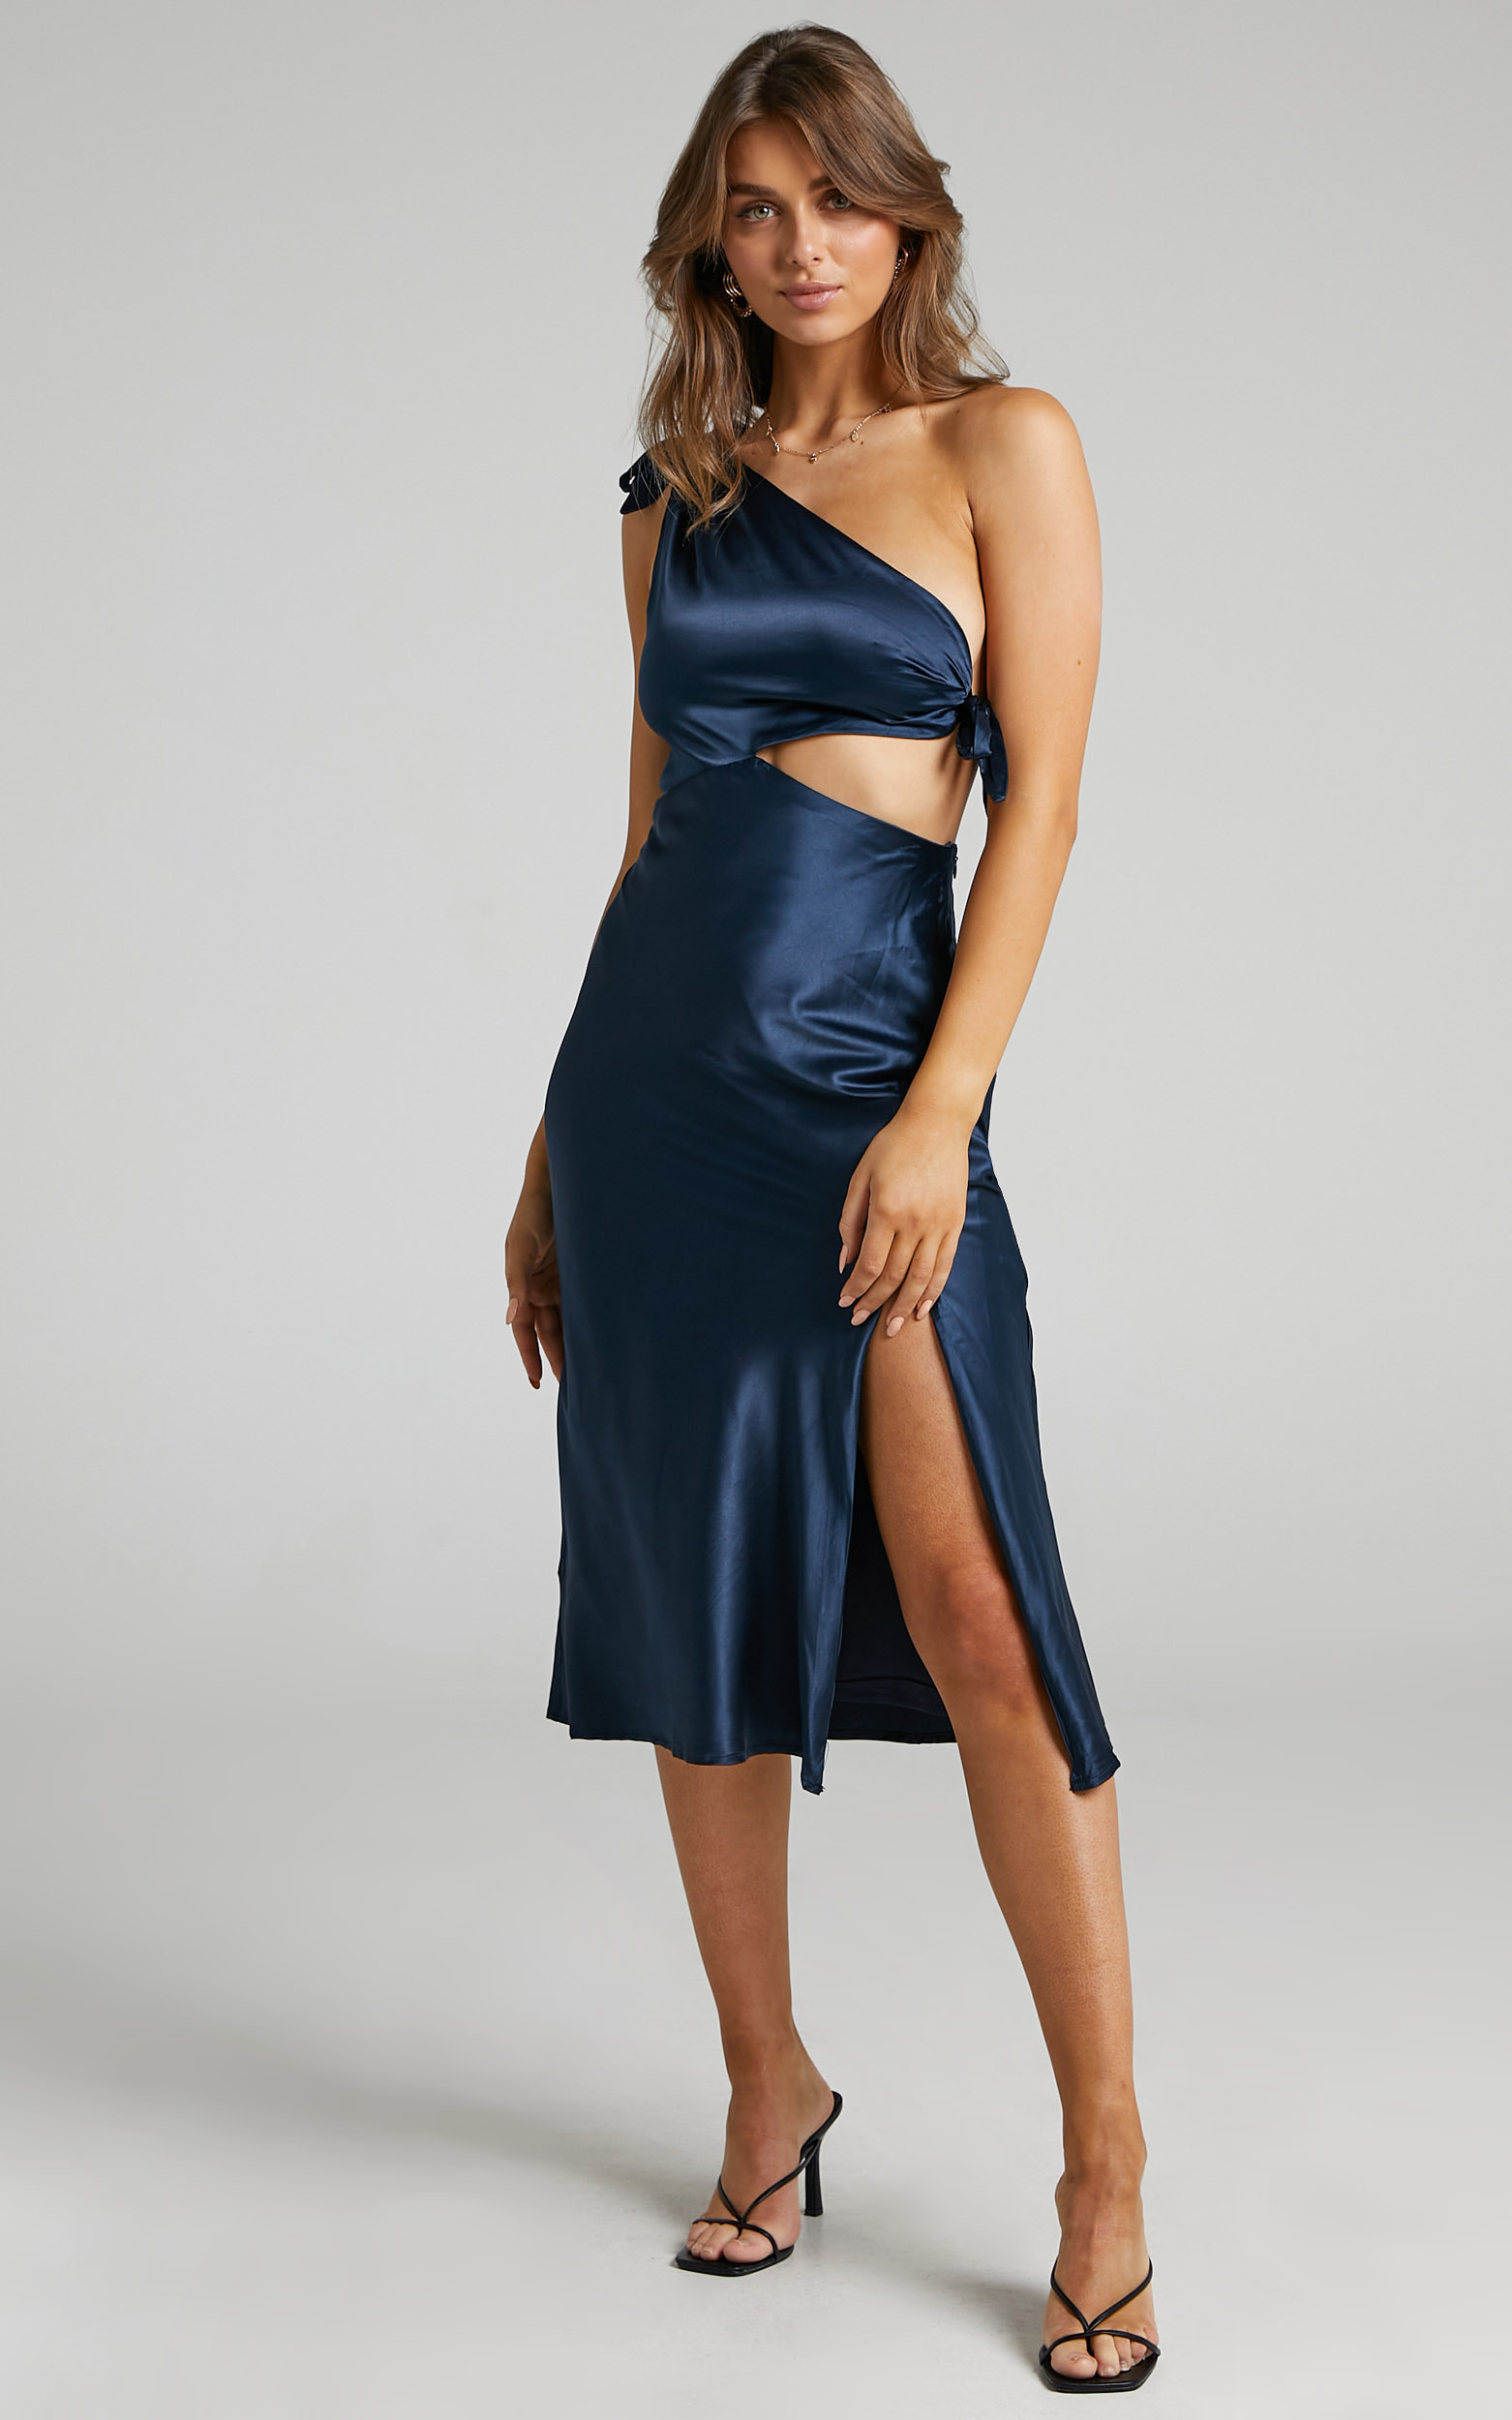 Glaucus Dress in Navy Satin - 06, NVY2, hi-res image number null